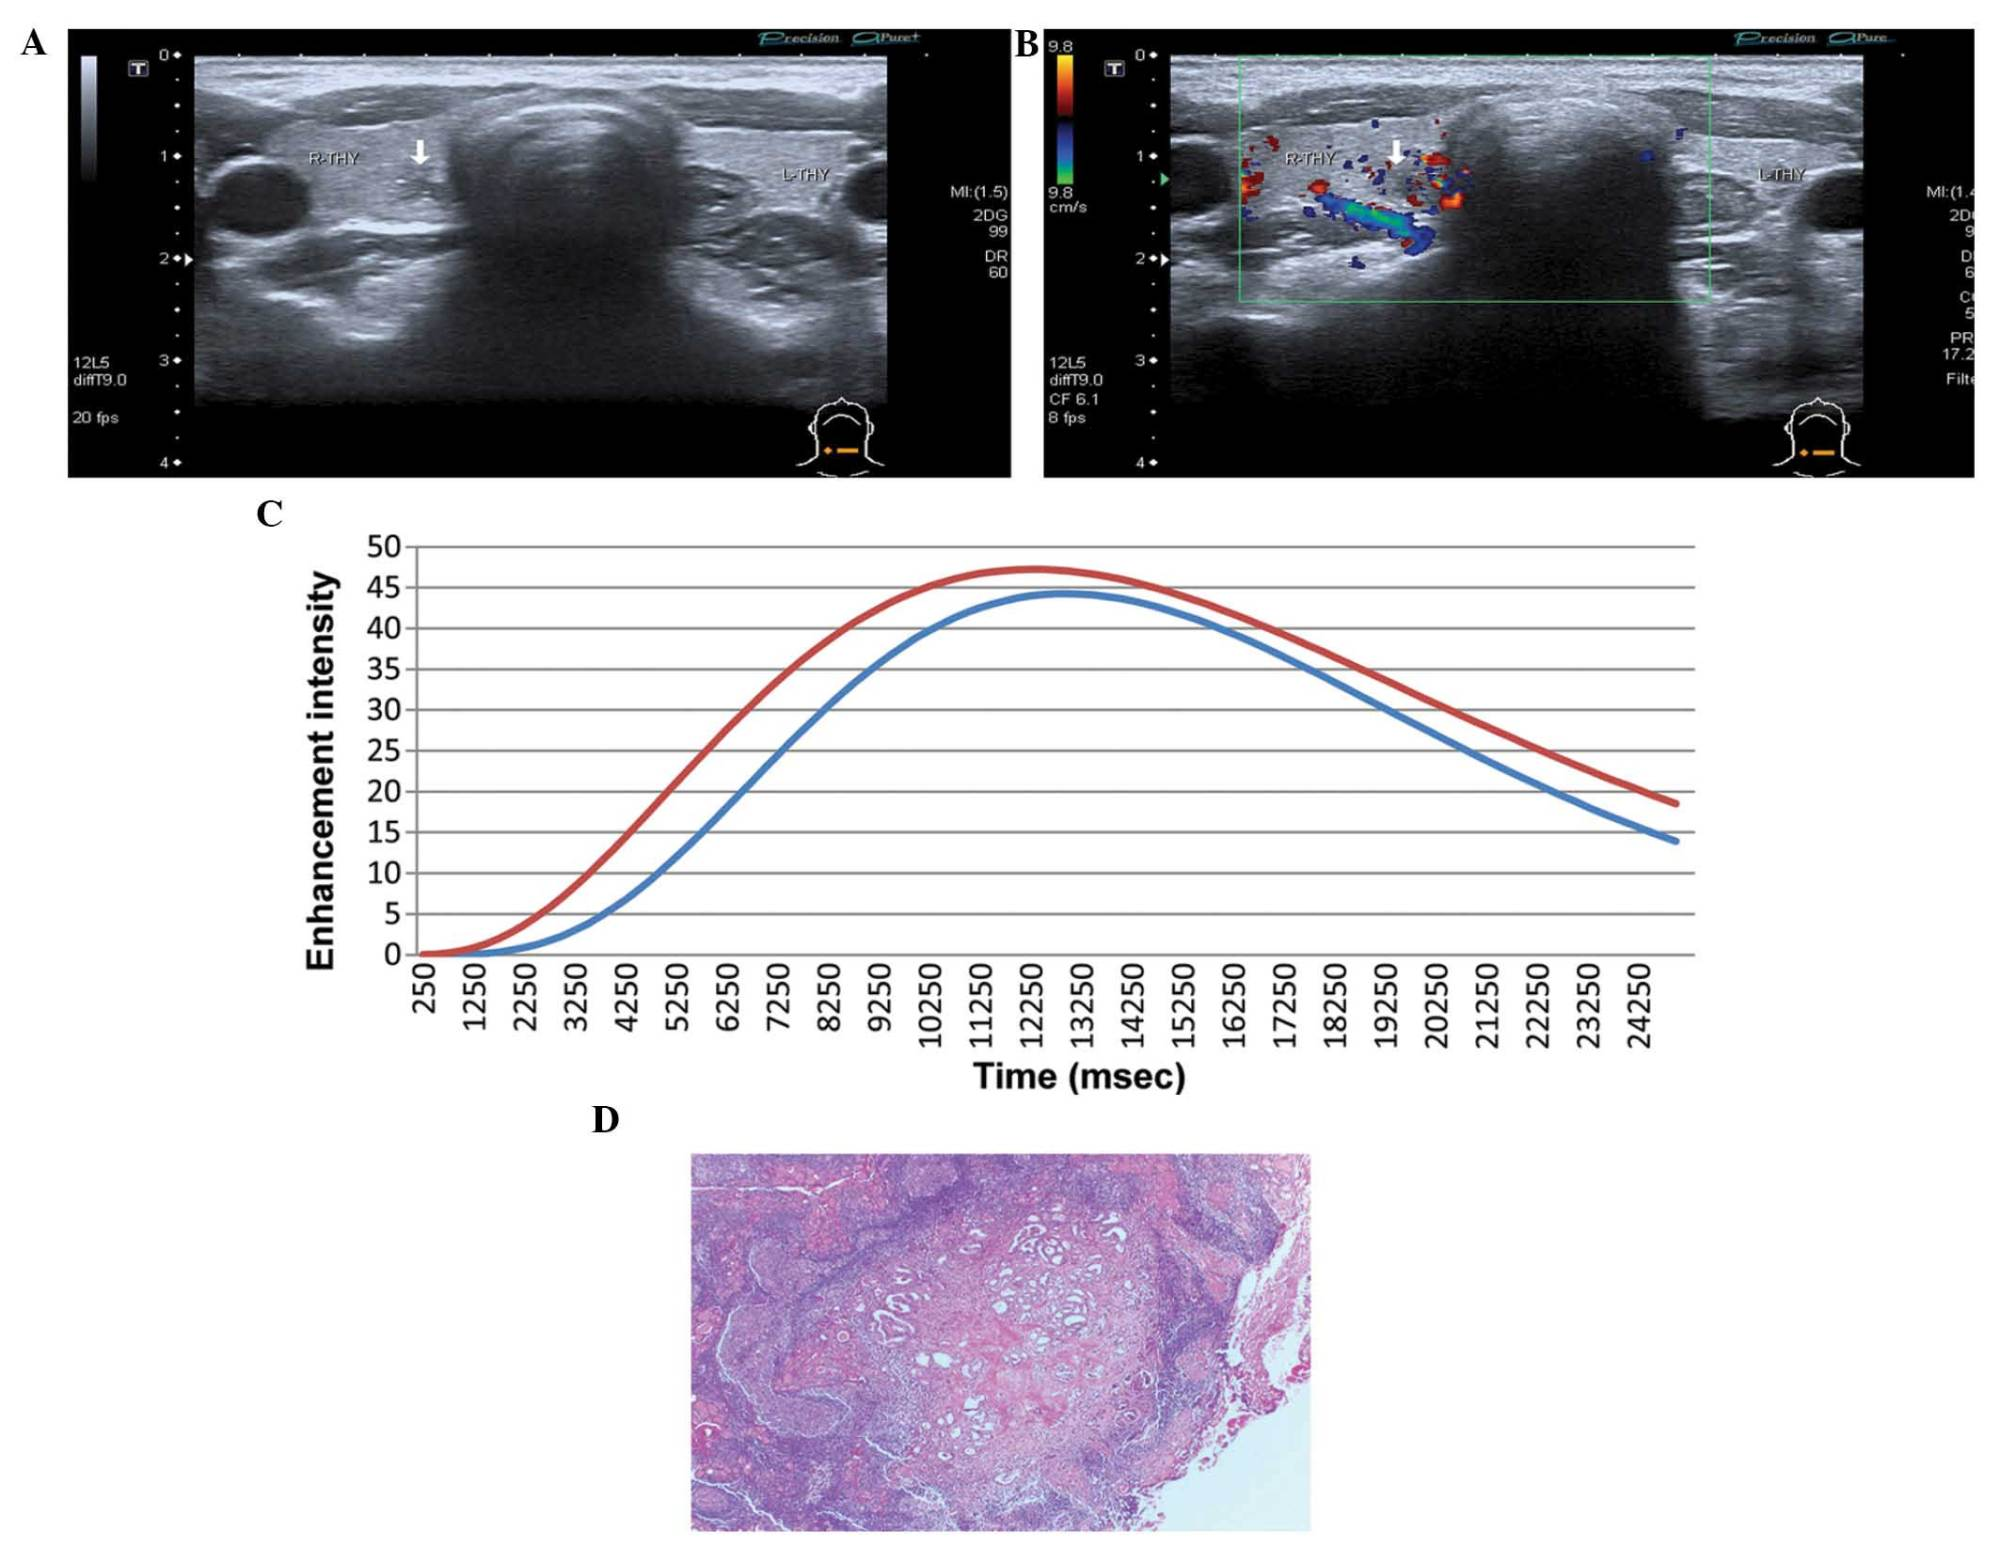 hight resolution of sonograms from 2d ultrasound of papillary thyroid microcarcinoma with a an irregular ill defined nodule with microcalcification inside b mode ultrasound